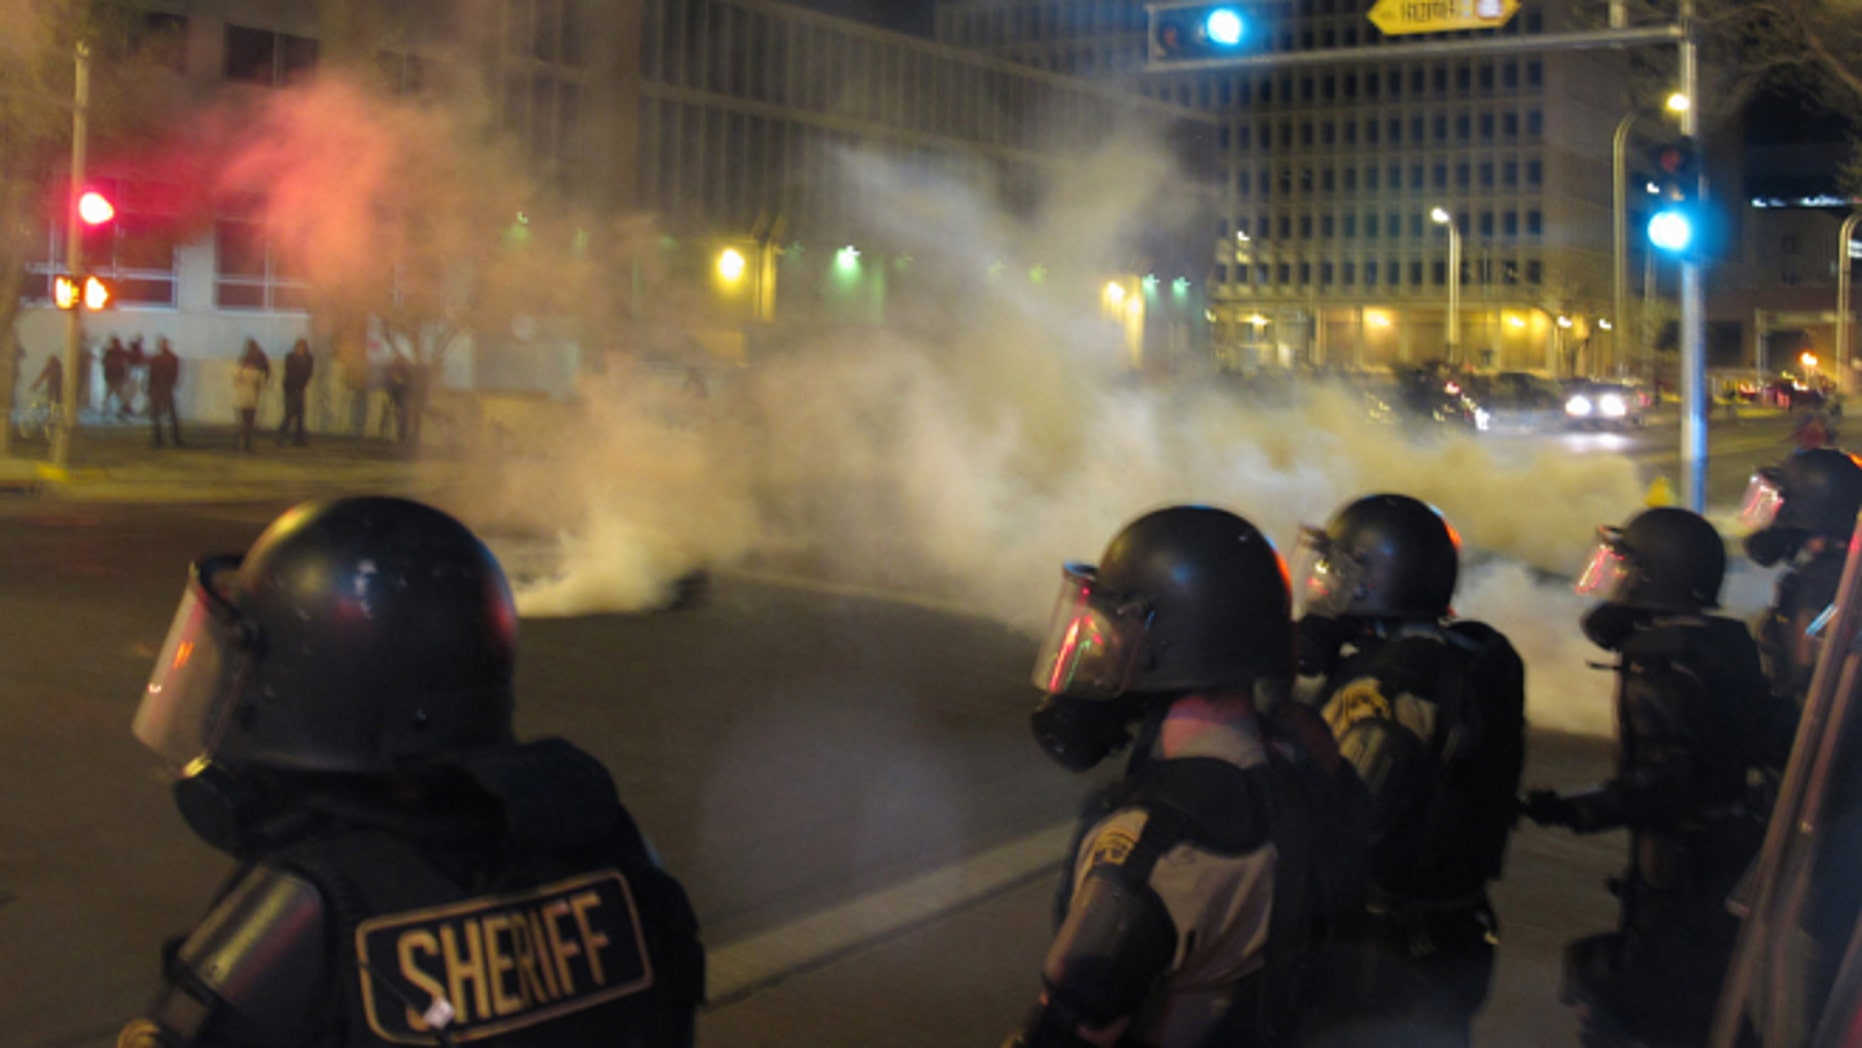 Riot police launch tear gas in downtown Albuquerque, N.M. following a 10-hour protest around the city, March 30, 2014.